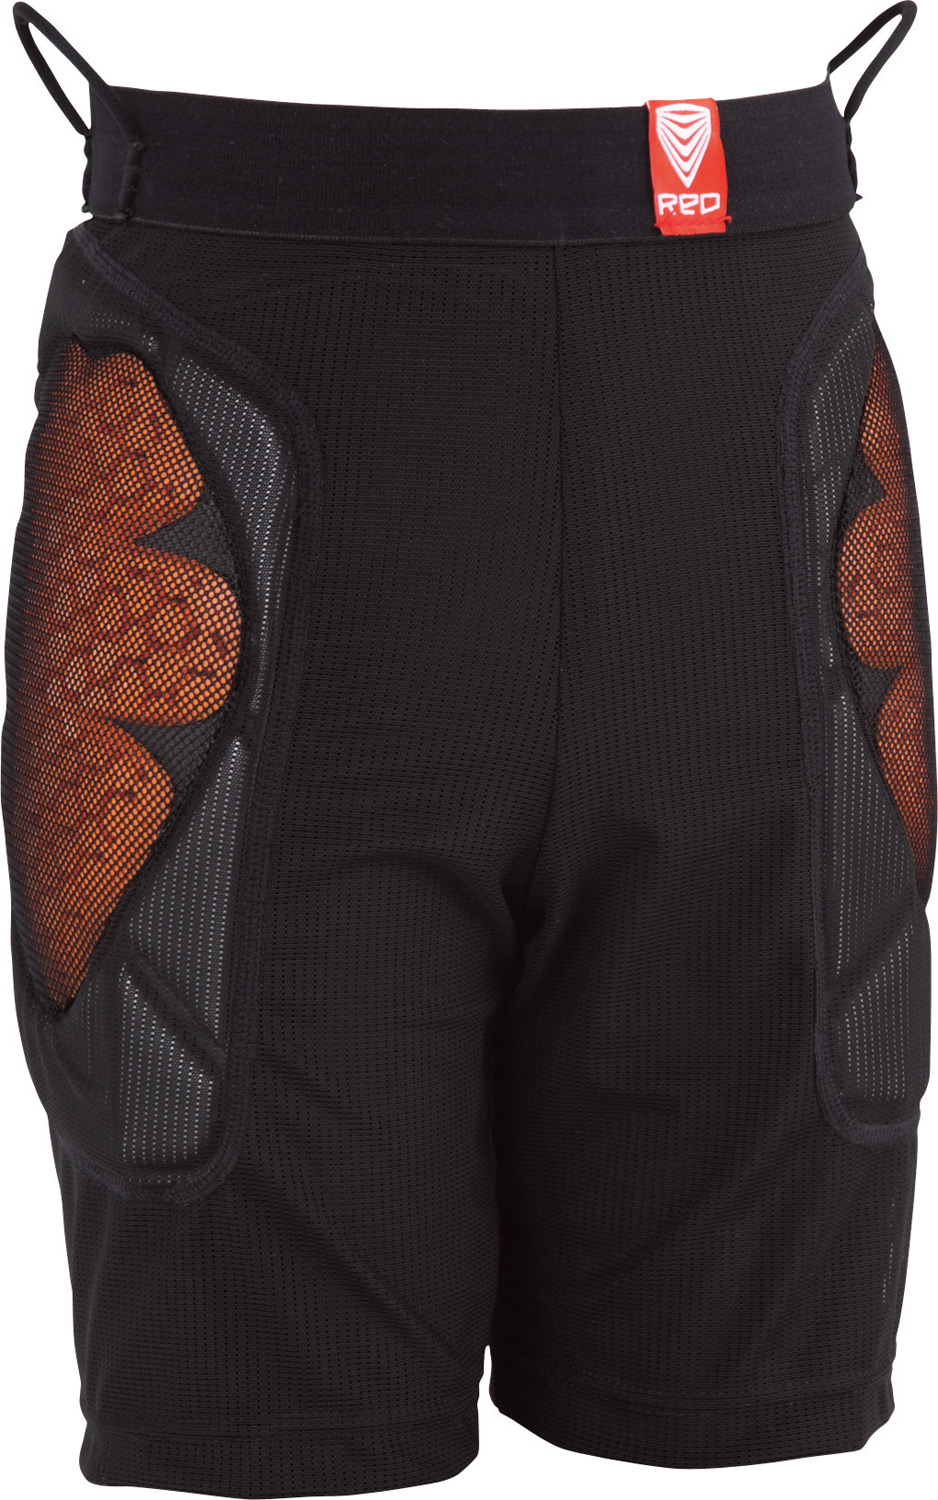 Red Base Layer Short Protective Gear Black - $44.95